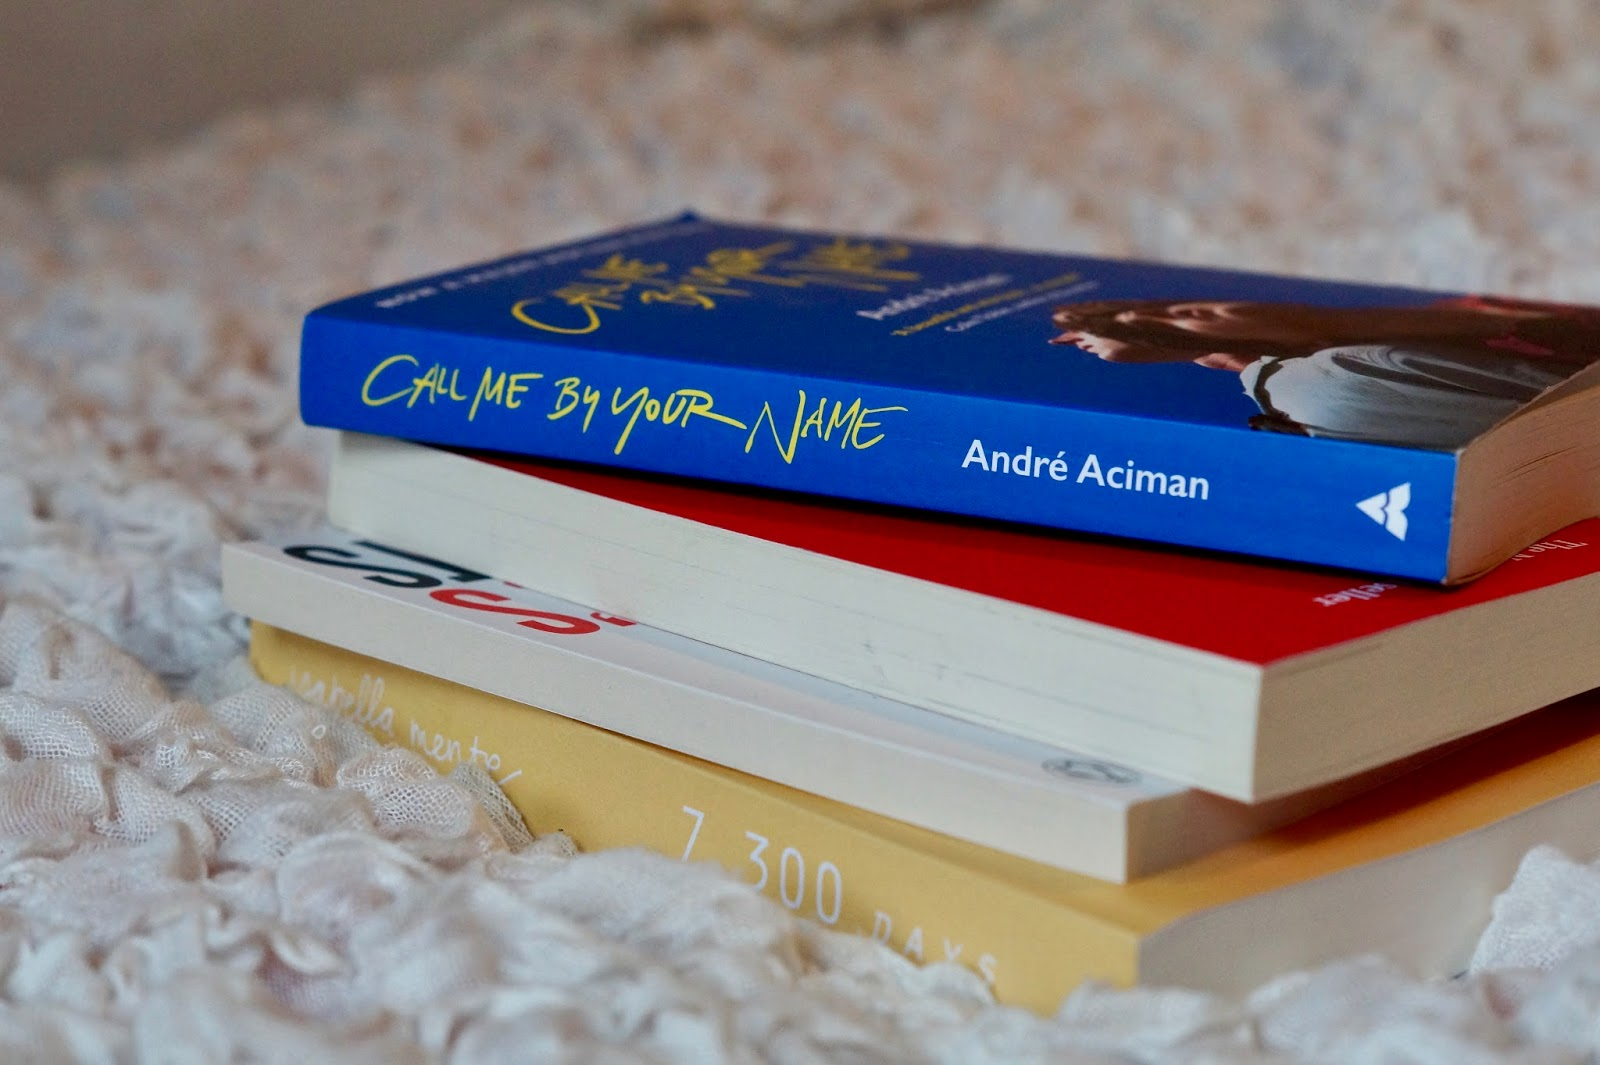 a pile of books call me by your name